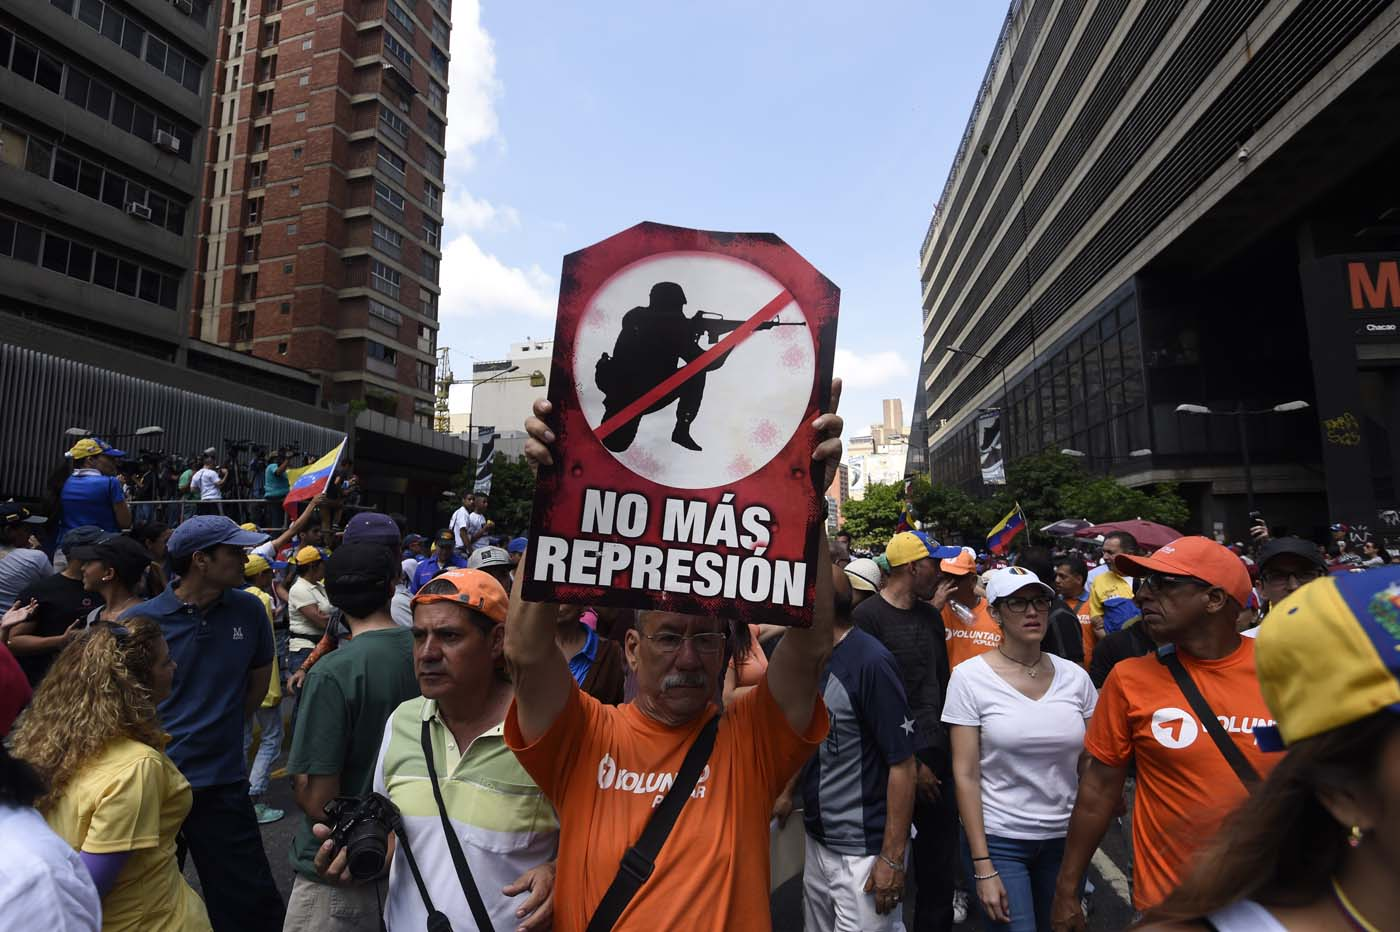 Demonstrators against Nicolas Maduro's government gather at Chacao municipality, east of Caracas on April 8, 2017. The opposition is accusing pro-Maduro Supreme Court judges of attempting an internal